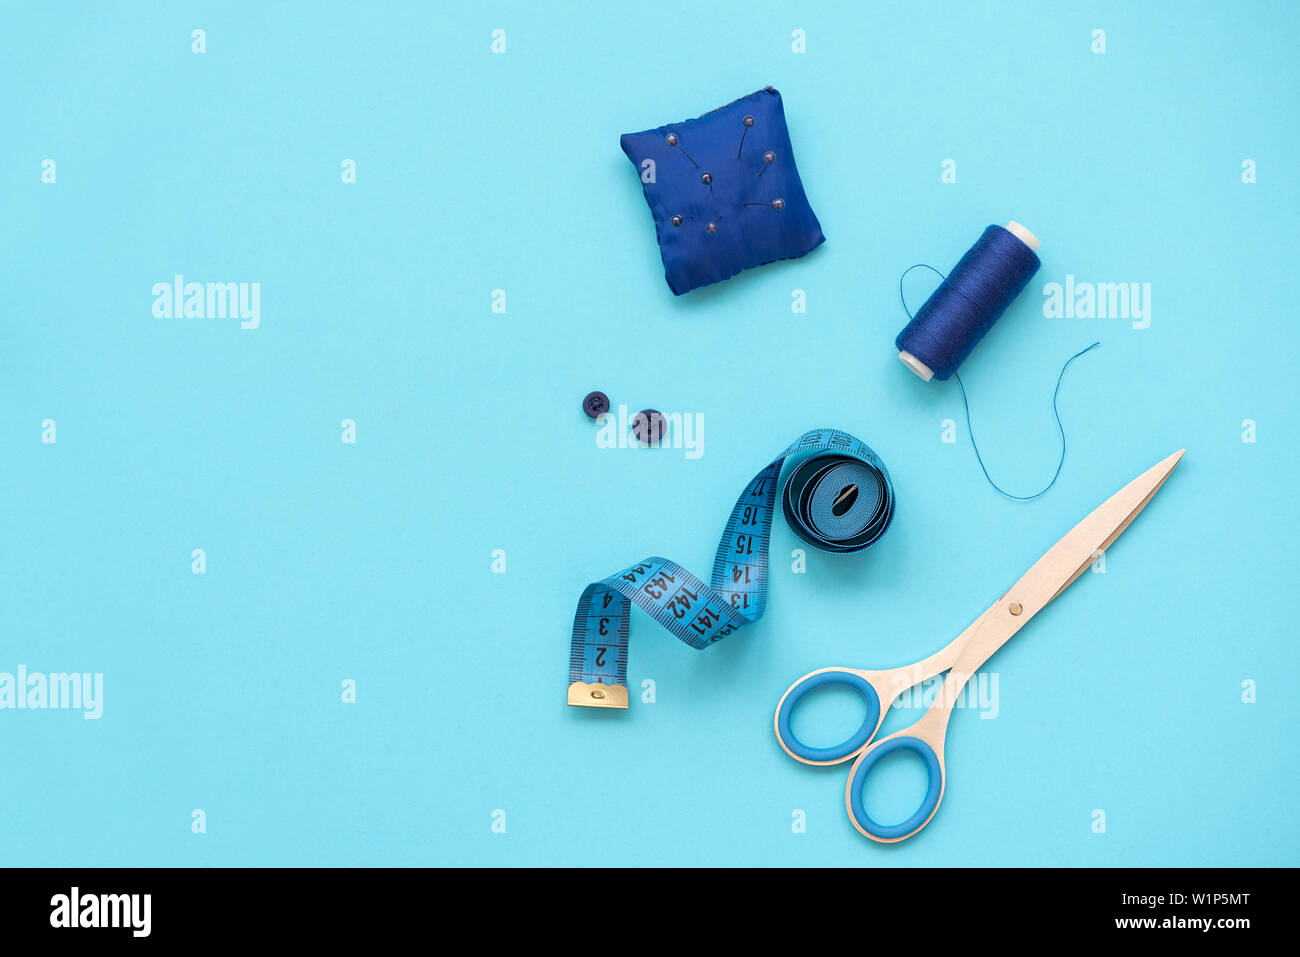 Sewing accessories with threads, scissors, pins, fabric, buttons and sewing tape on blue background. Top view. Flat lay. Stock Photo